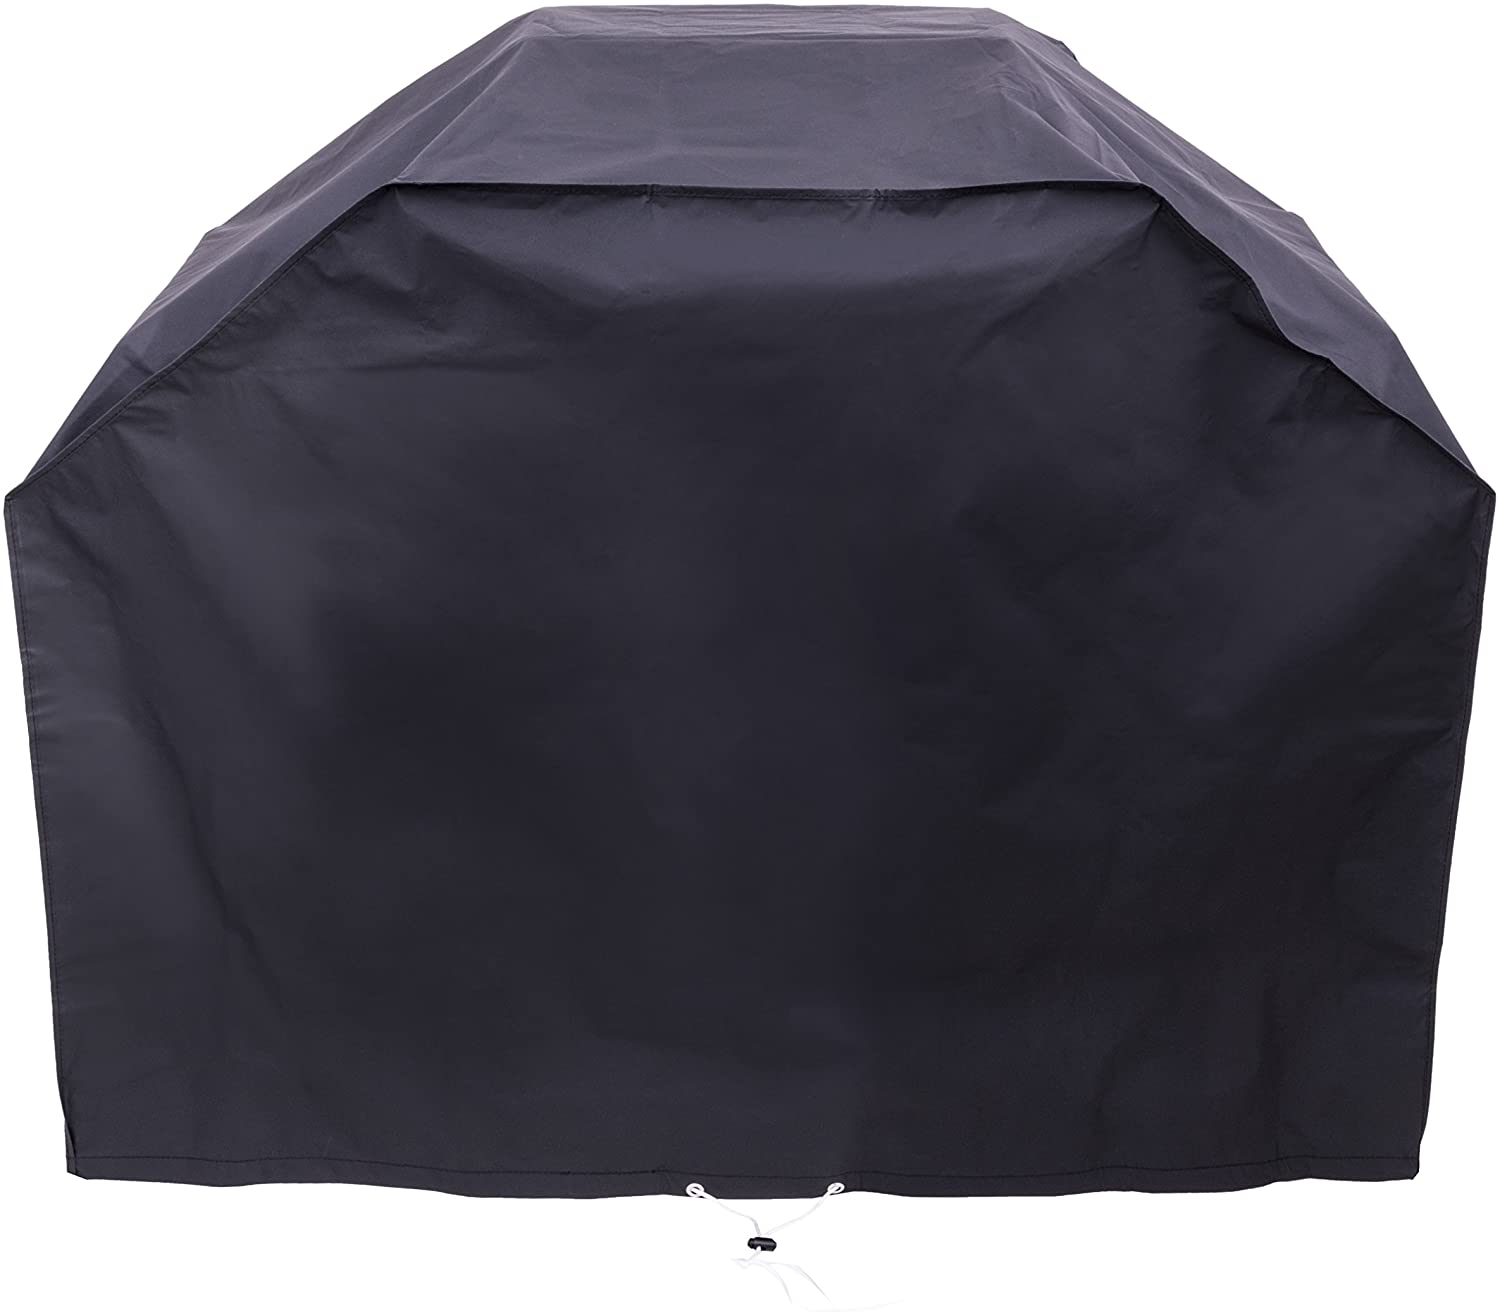 Char-Broil Medium Basic Grill Cover